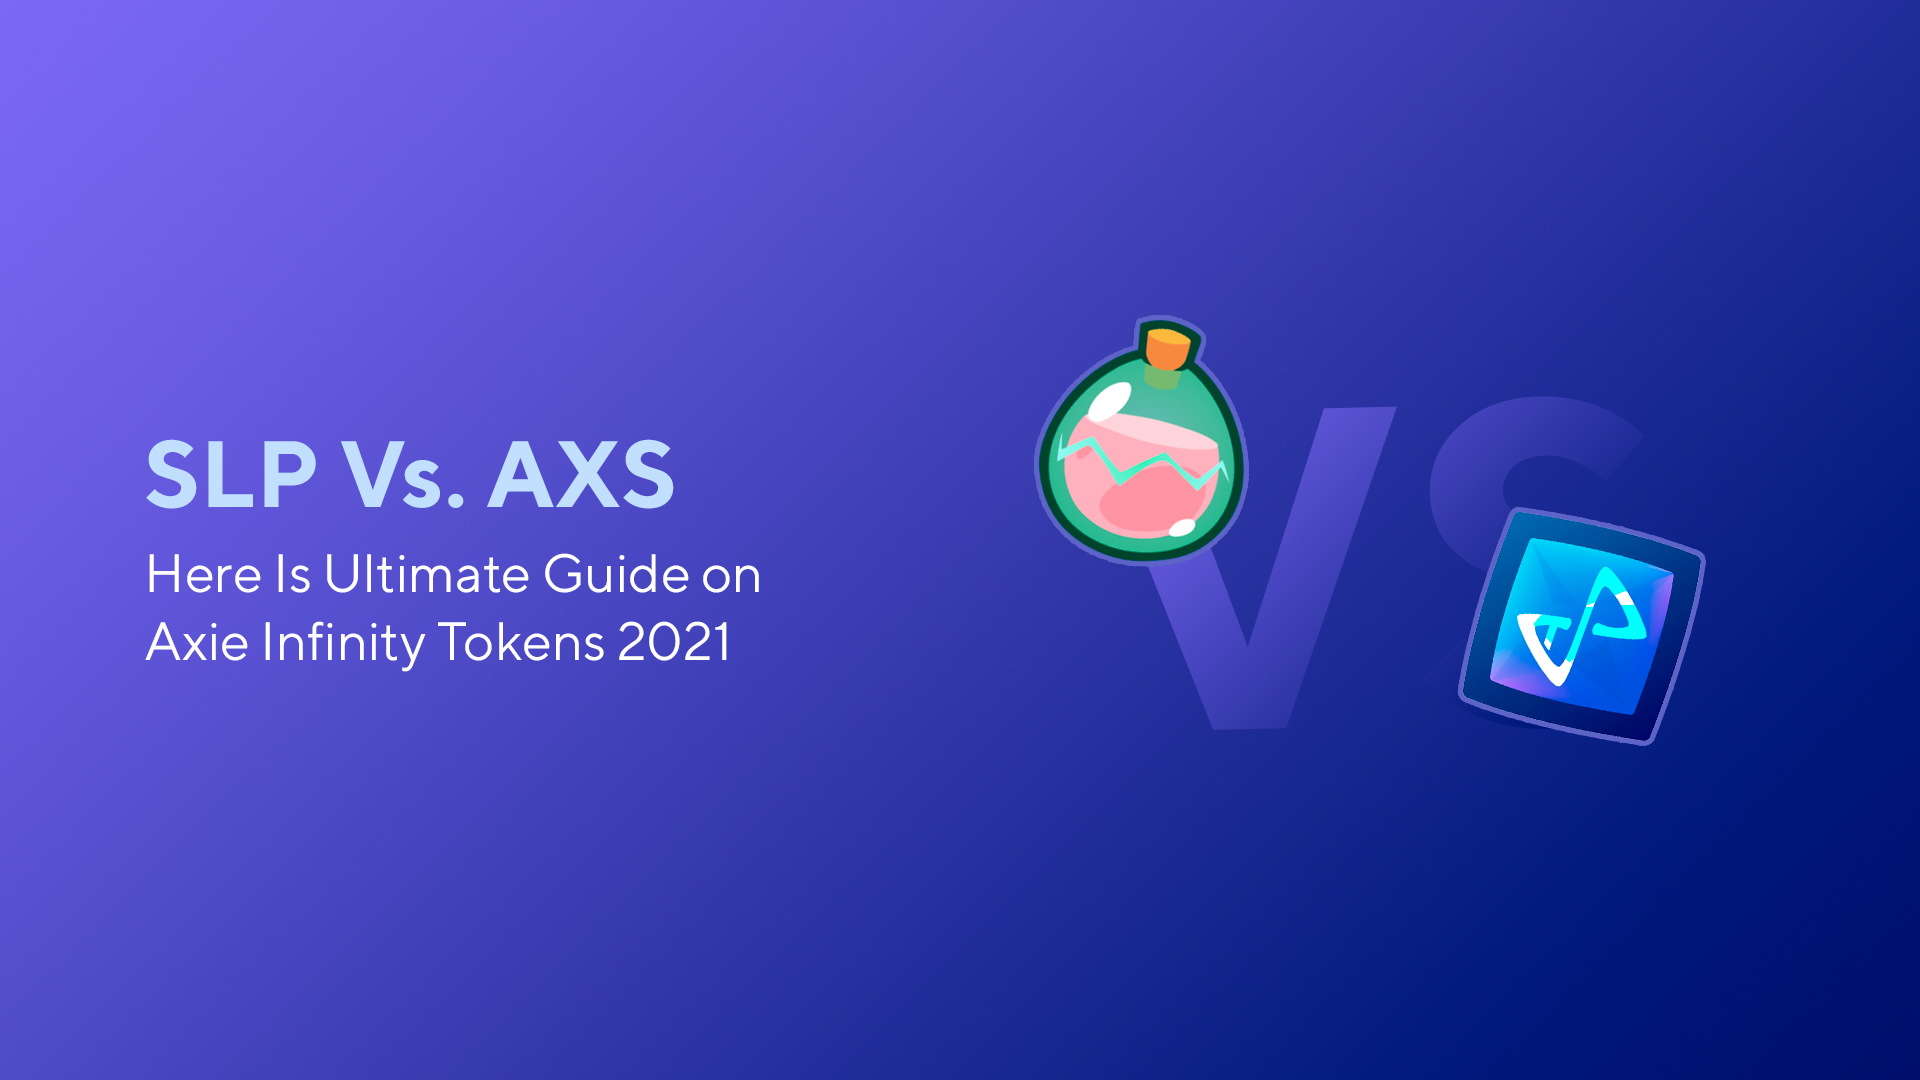 SLP Vs. AXS: Here Is Ultimate Guide on Axie Infinity Tokens 2021